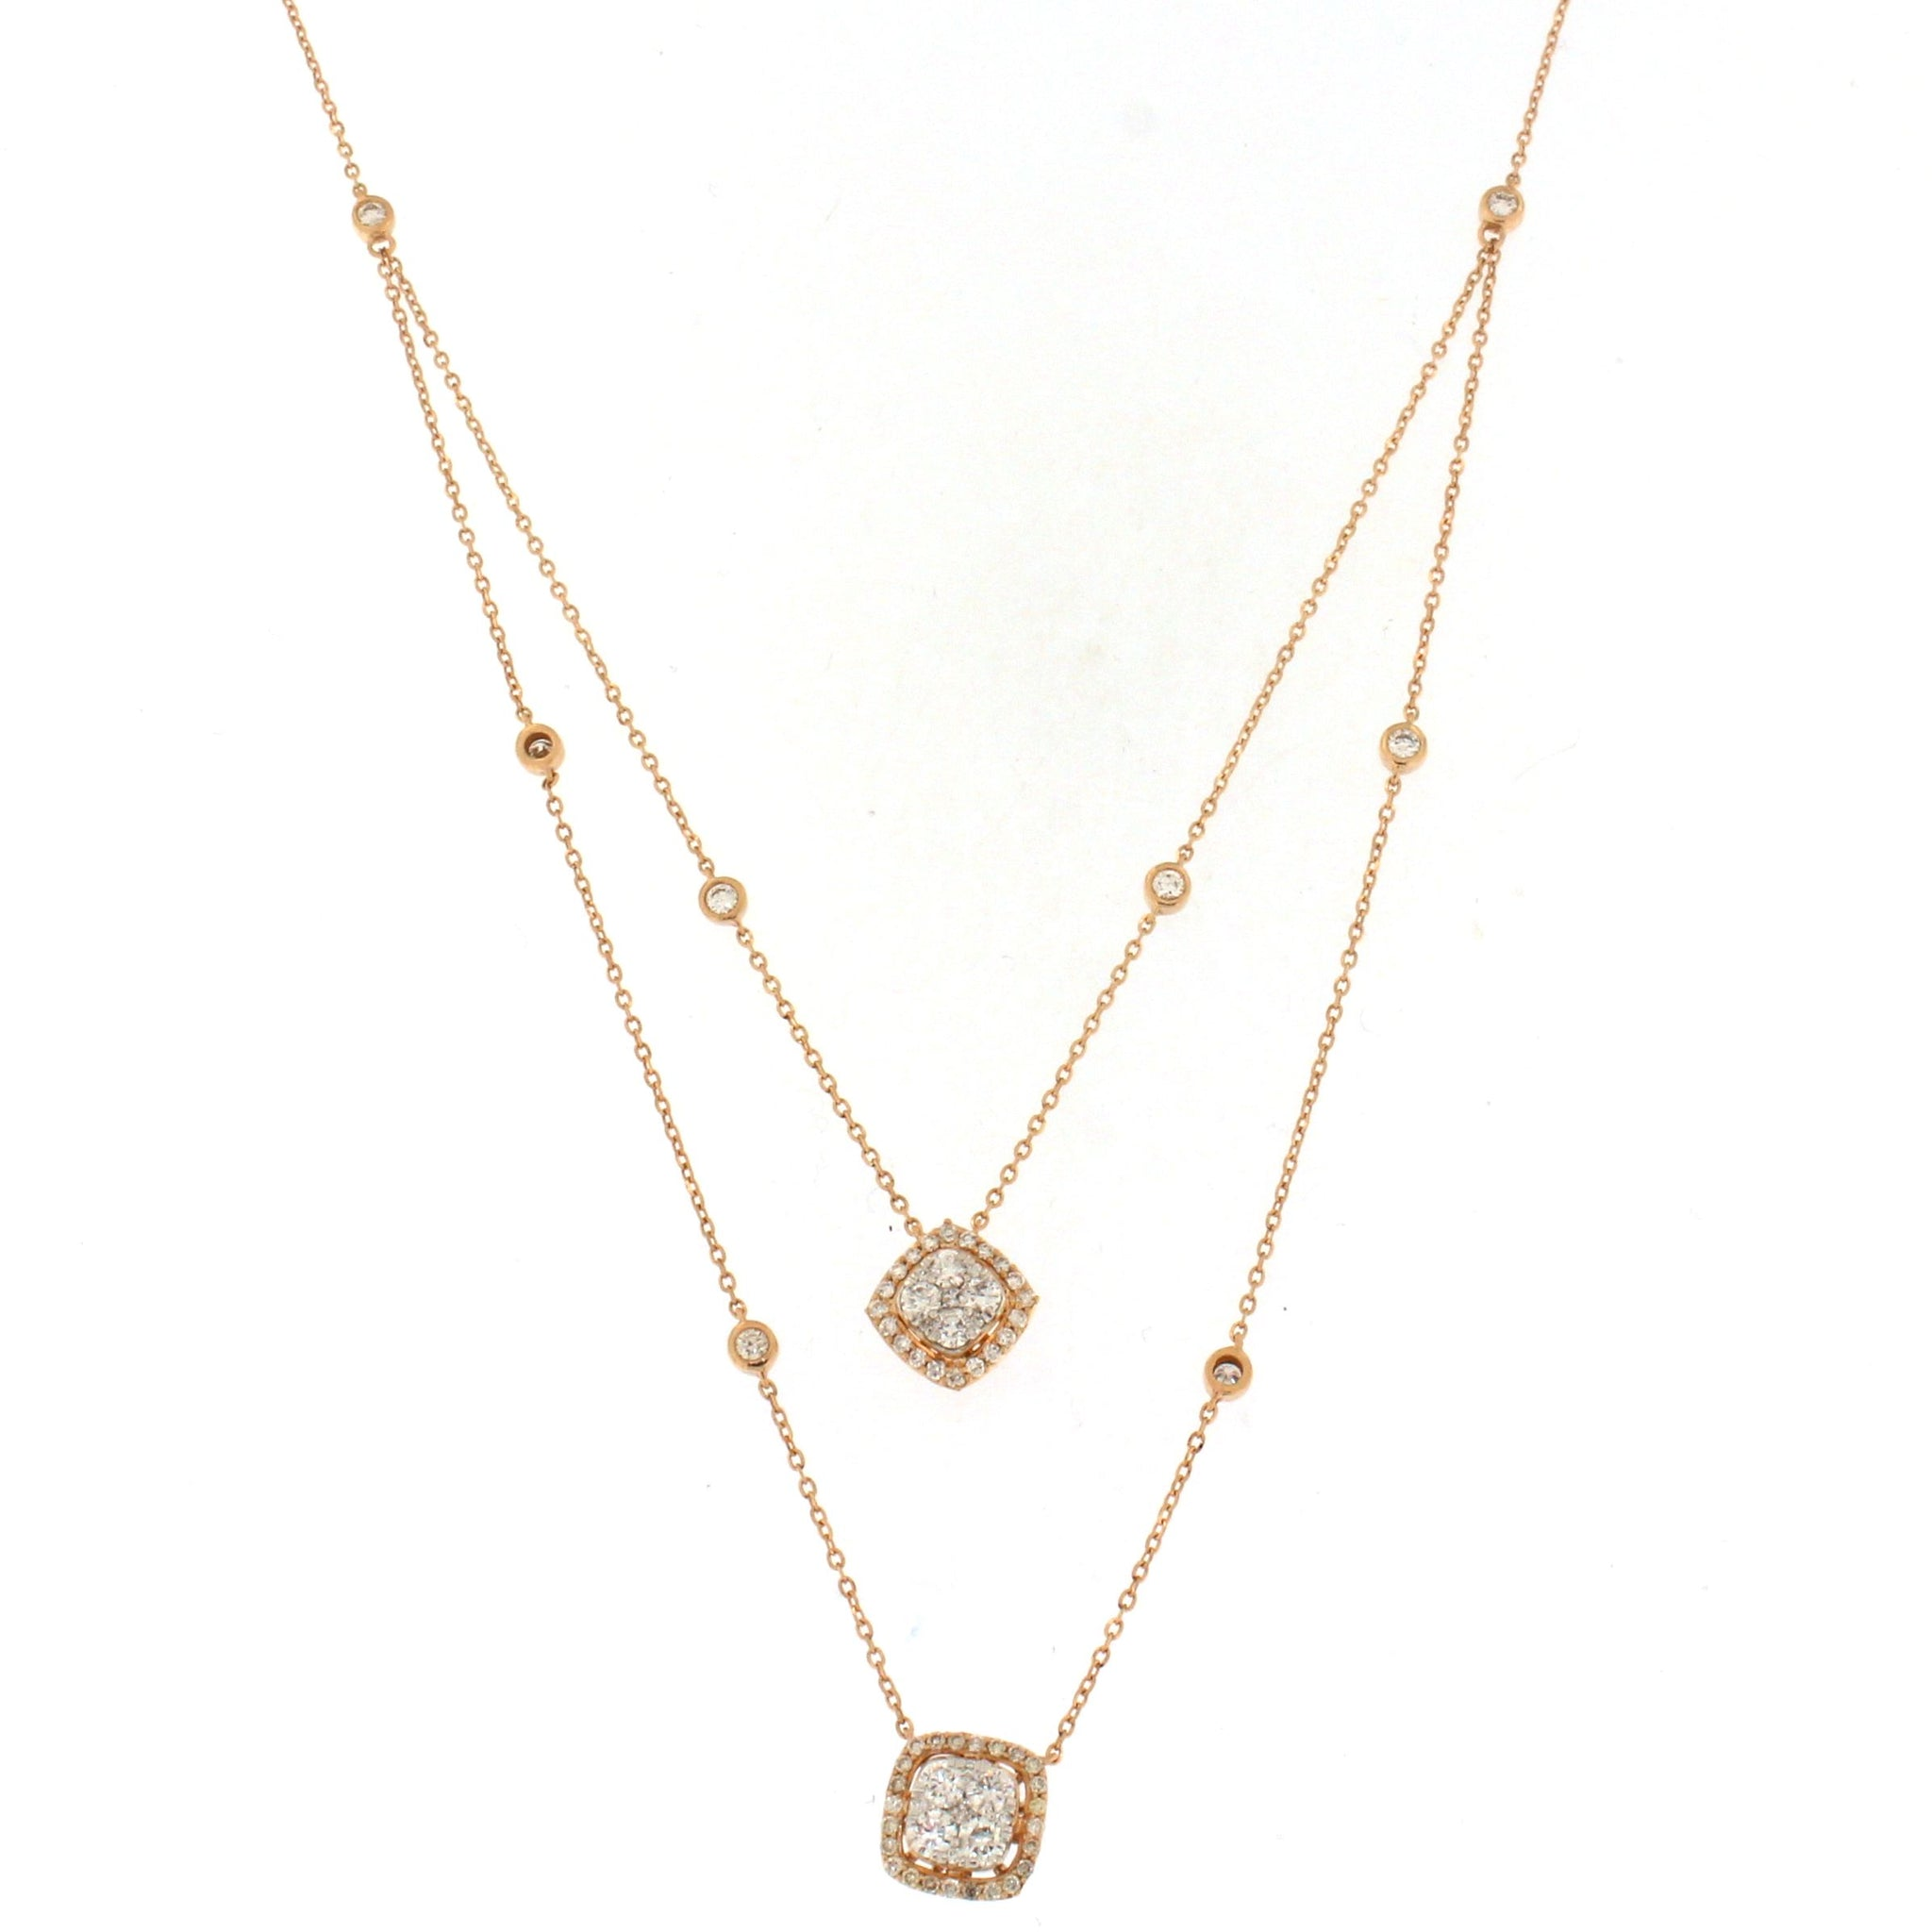 necklace authentic nouvelle pendant fortrove paris diamond products cartier vague rose gold